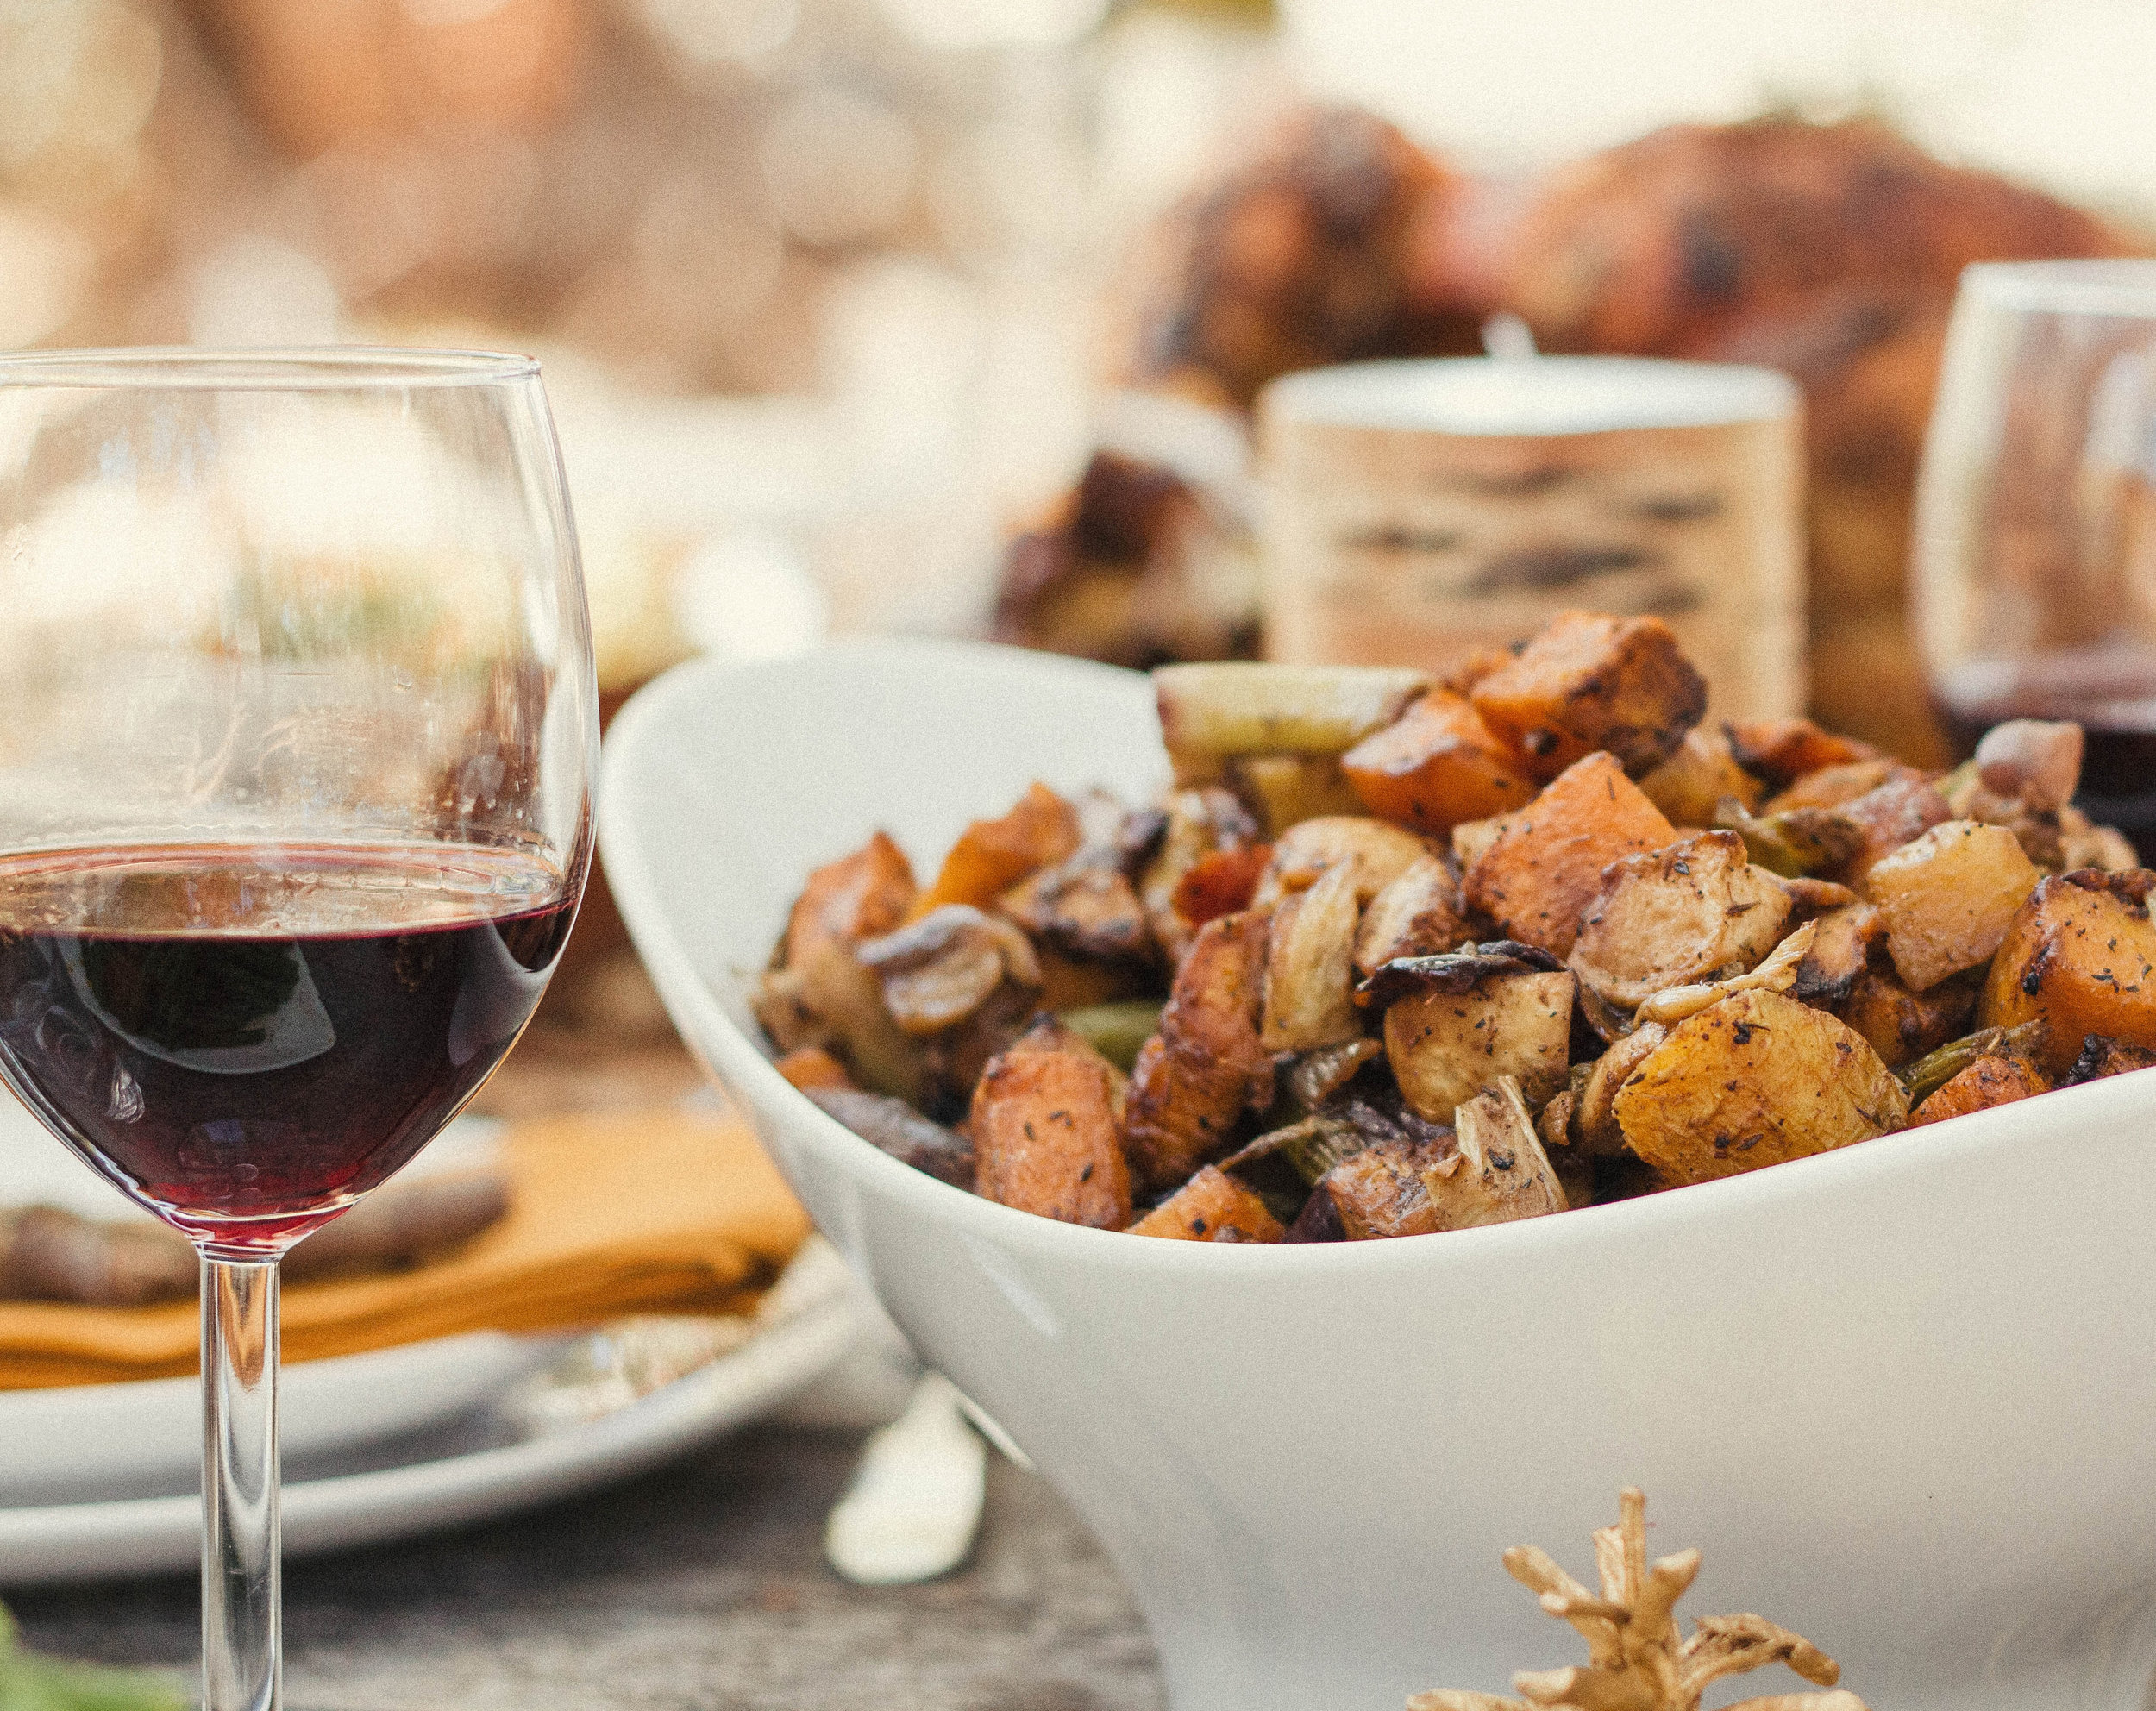 Roasted potatoes and red wine.jpg